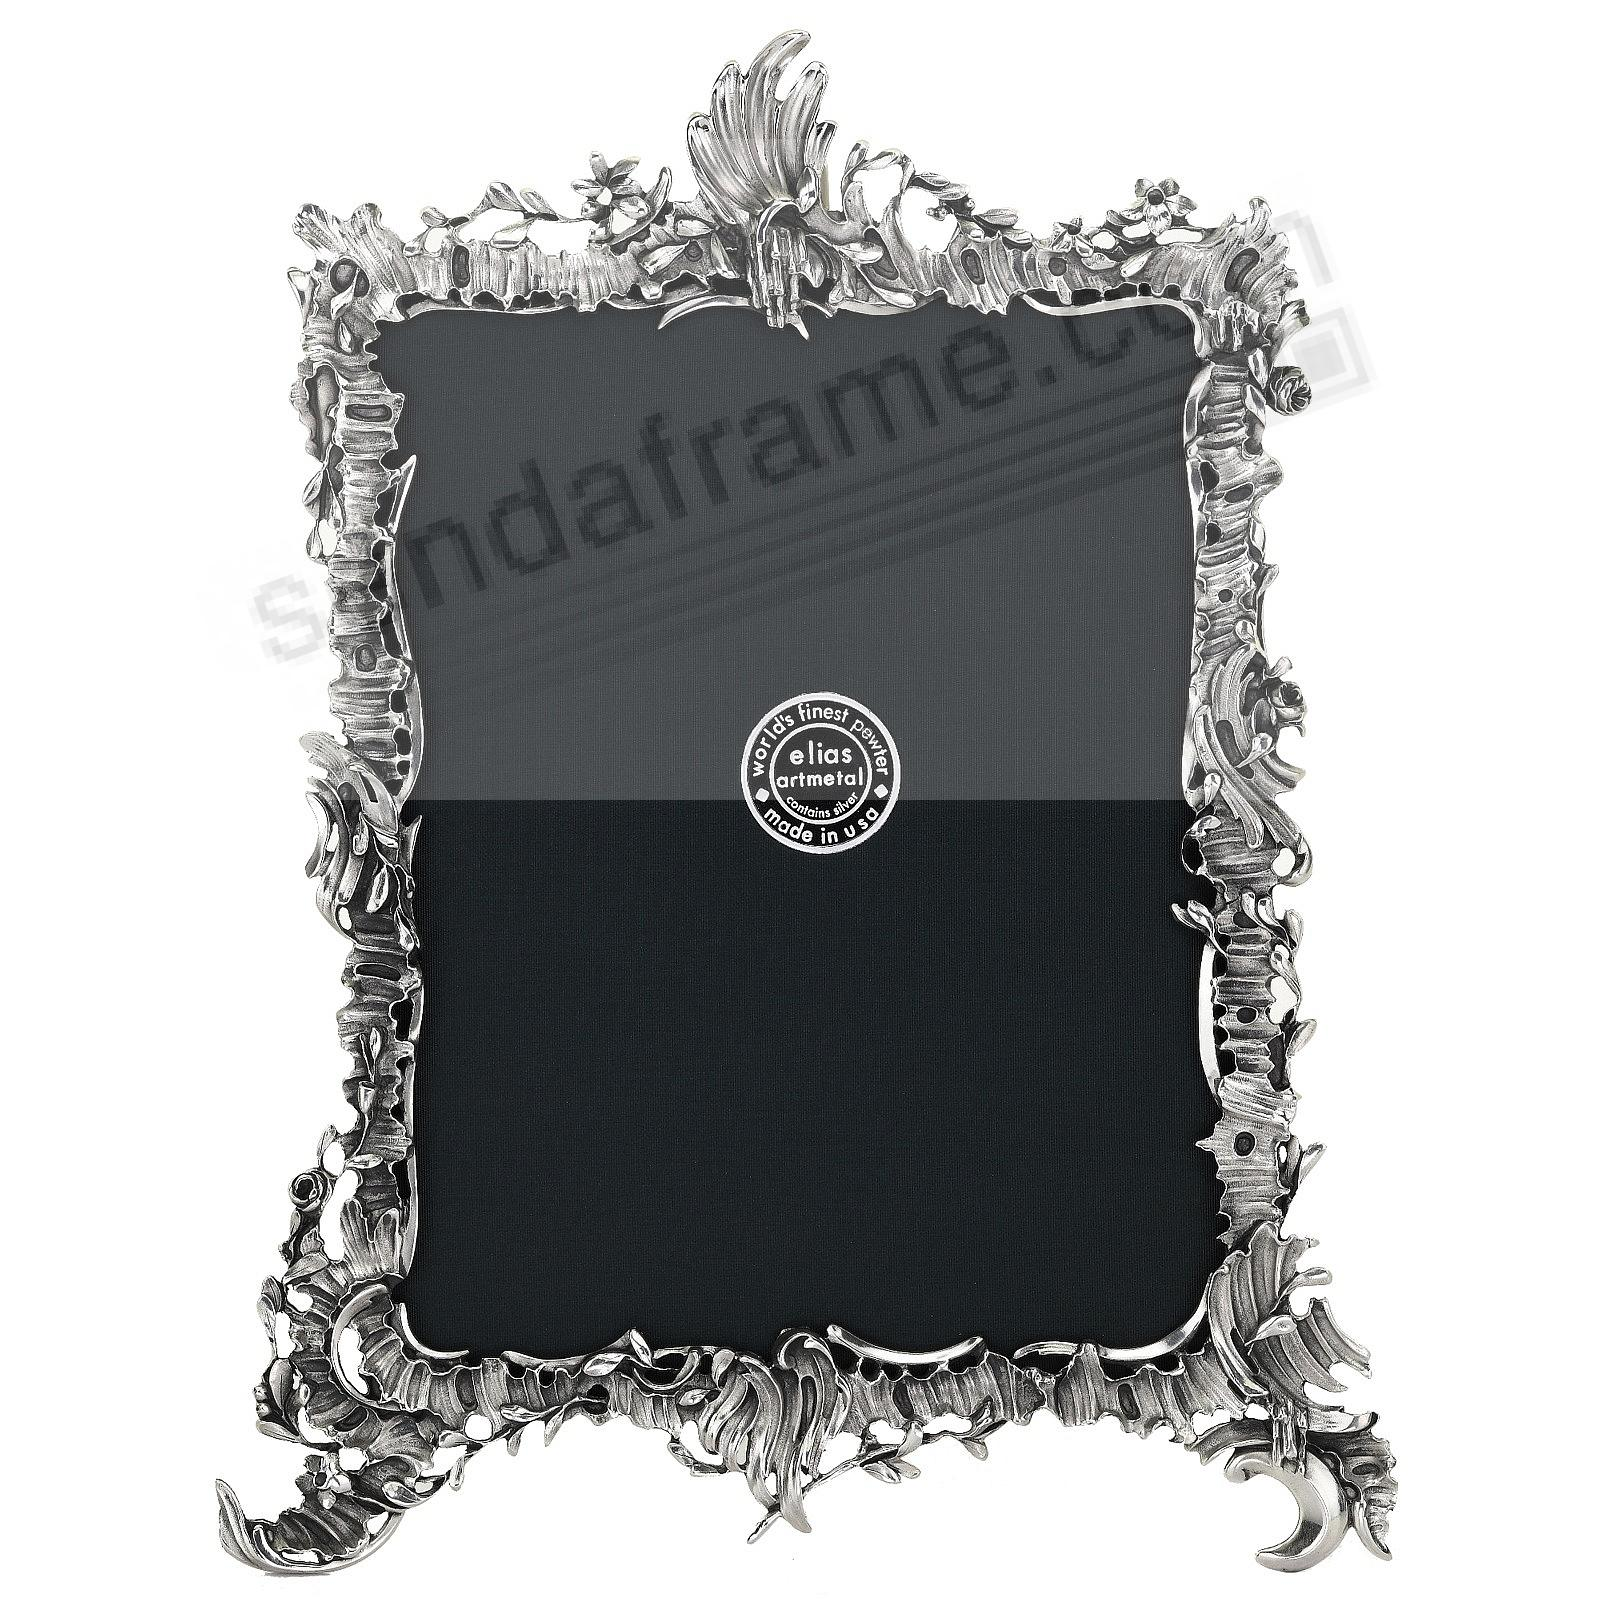 ENGLISH ROCOCO Fine Pewter by Elias Artmetal®